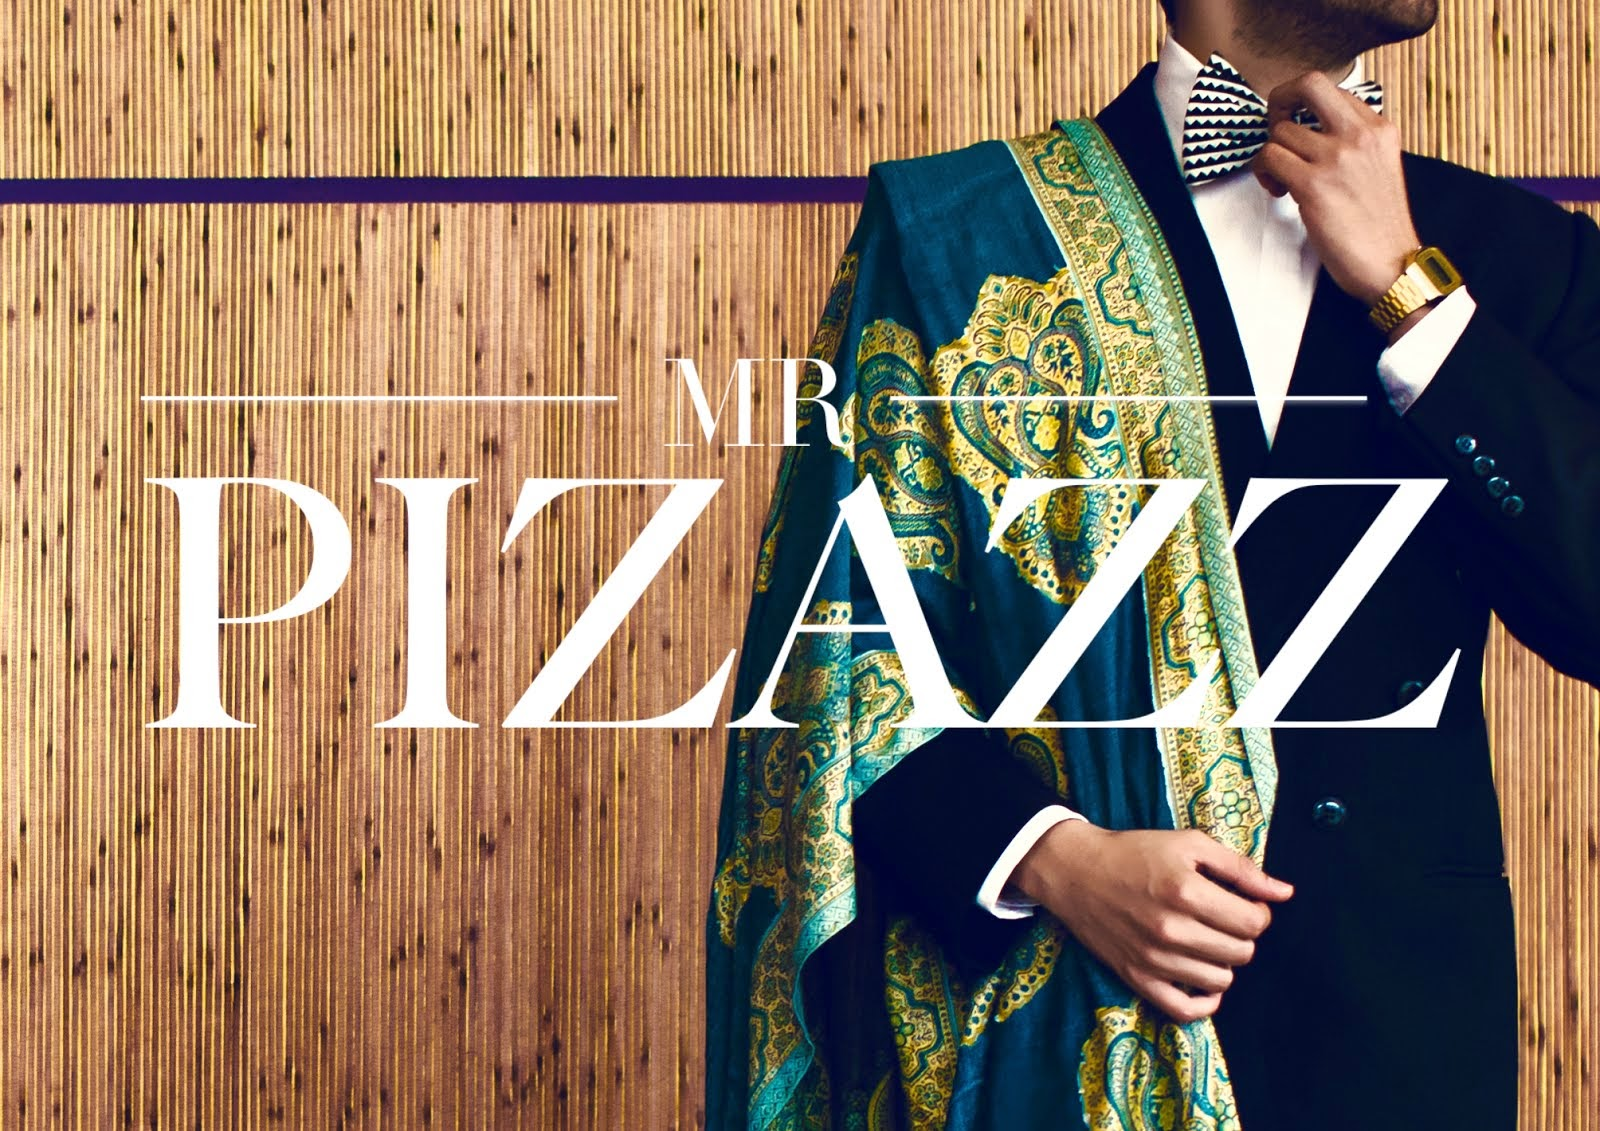 - Mr Pizazz: Menswear & Lifestyle -